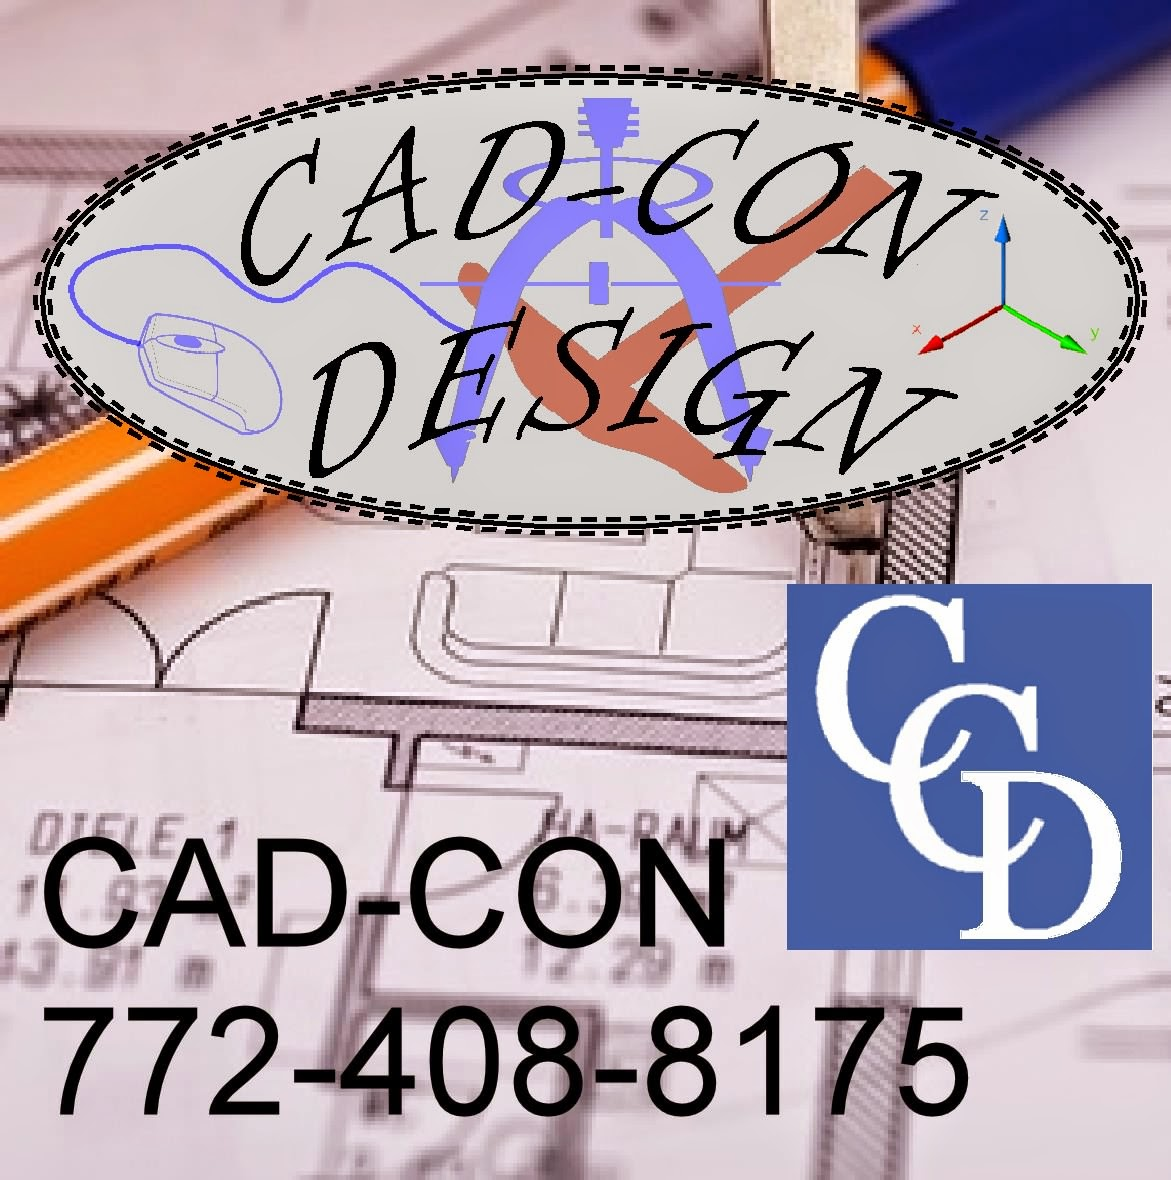 Cadkitchenplans com millwork shop drawings cabinet shop drawings - Call Cad Con Design For Your Millwork And Casework Shop Drawing Needs 772 408 8175 Or Visit Our Home Page Www Cadcondesign Com